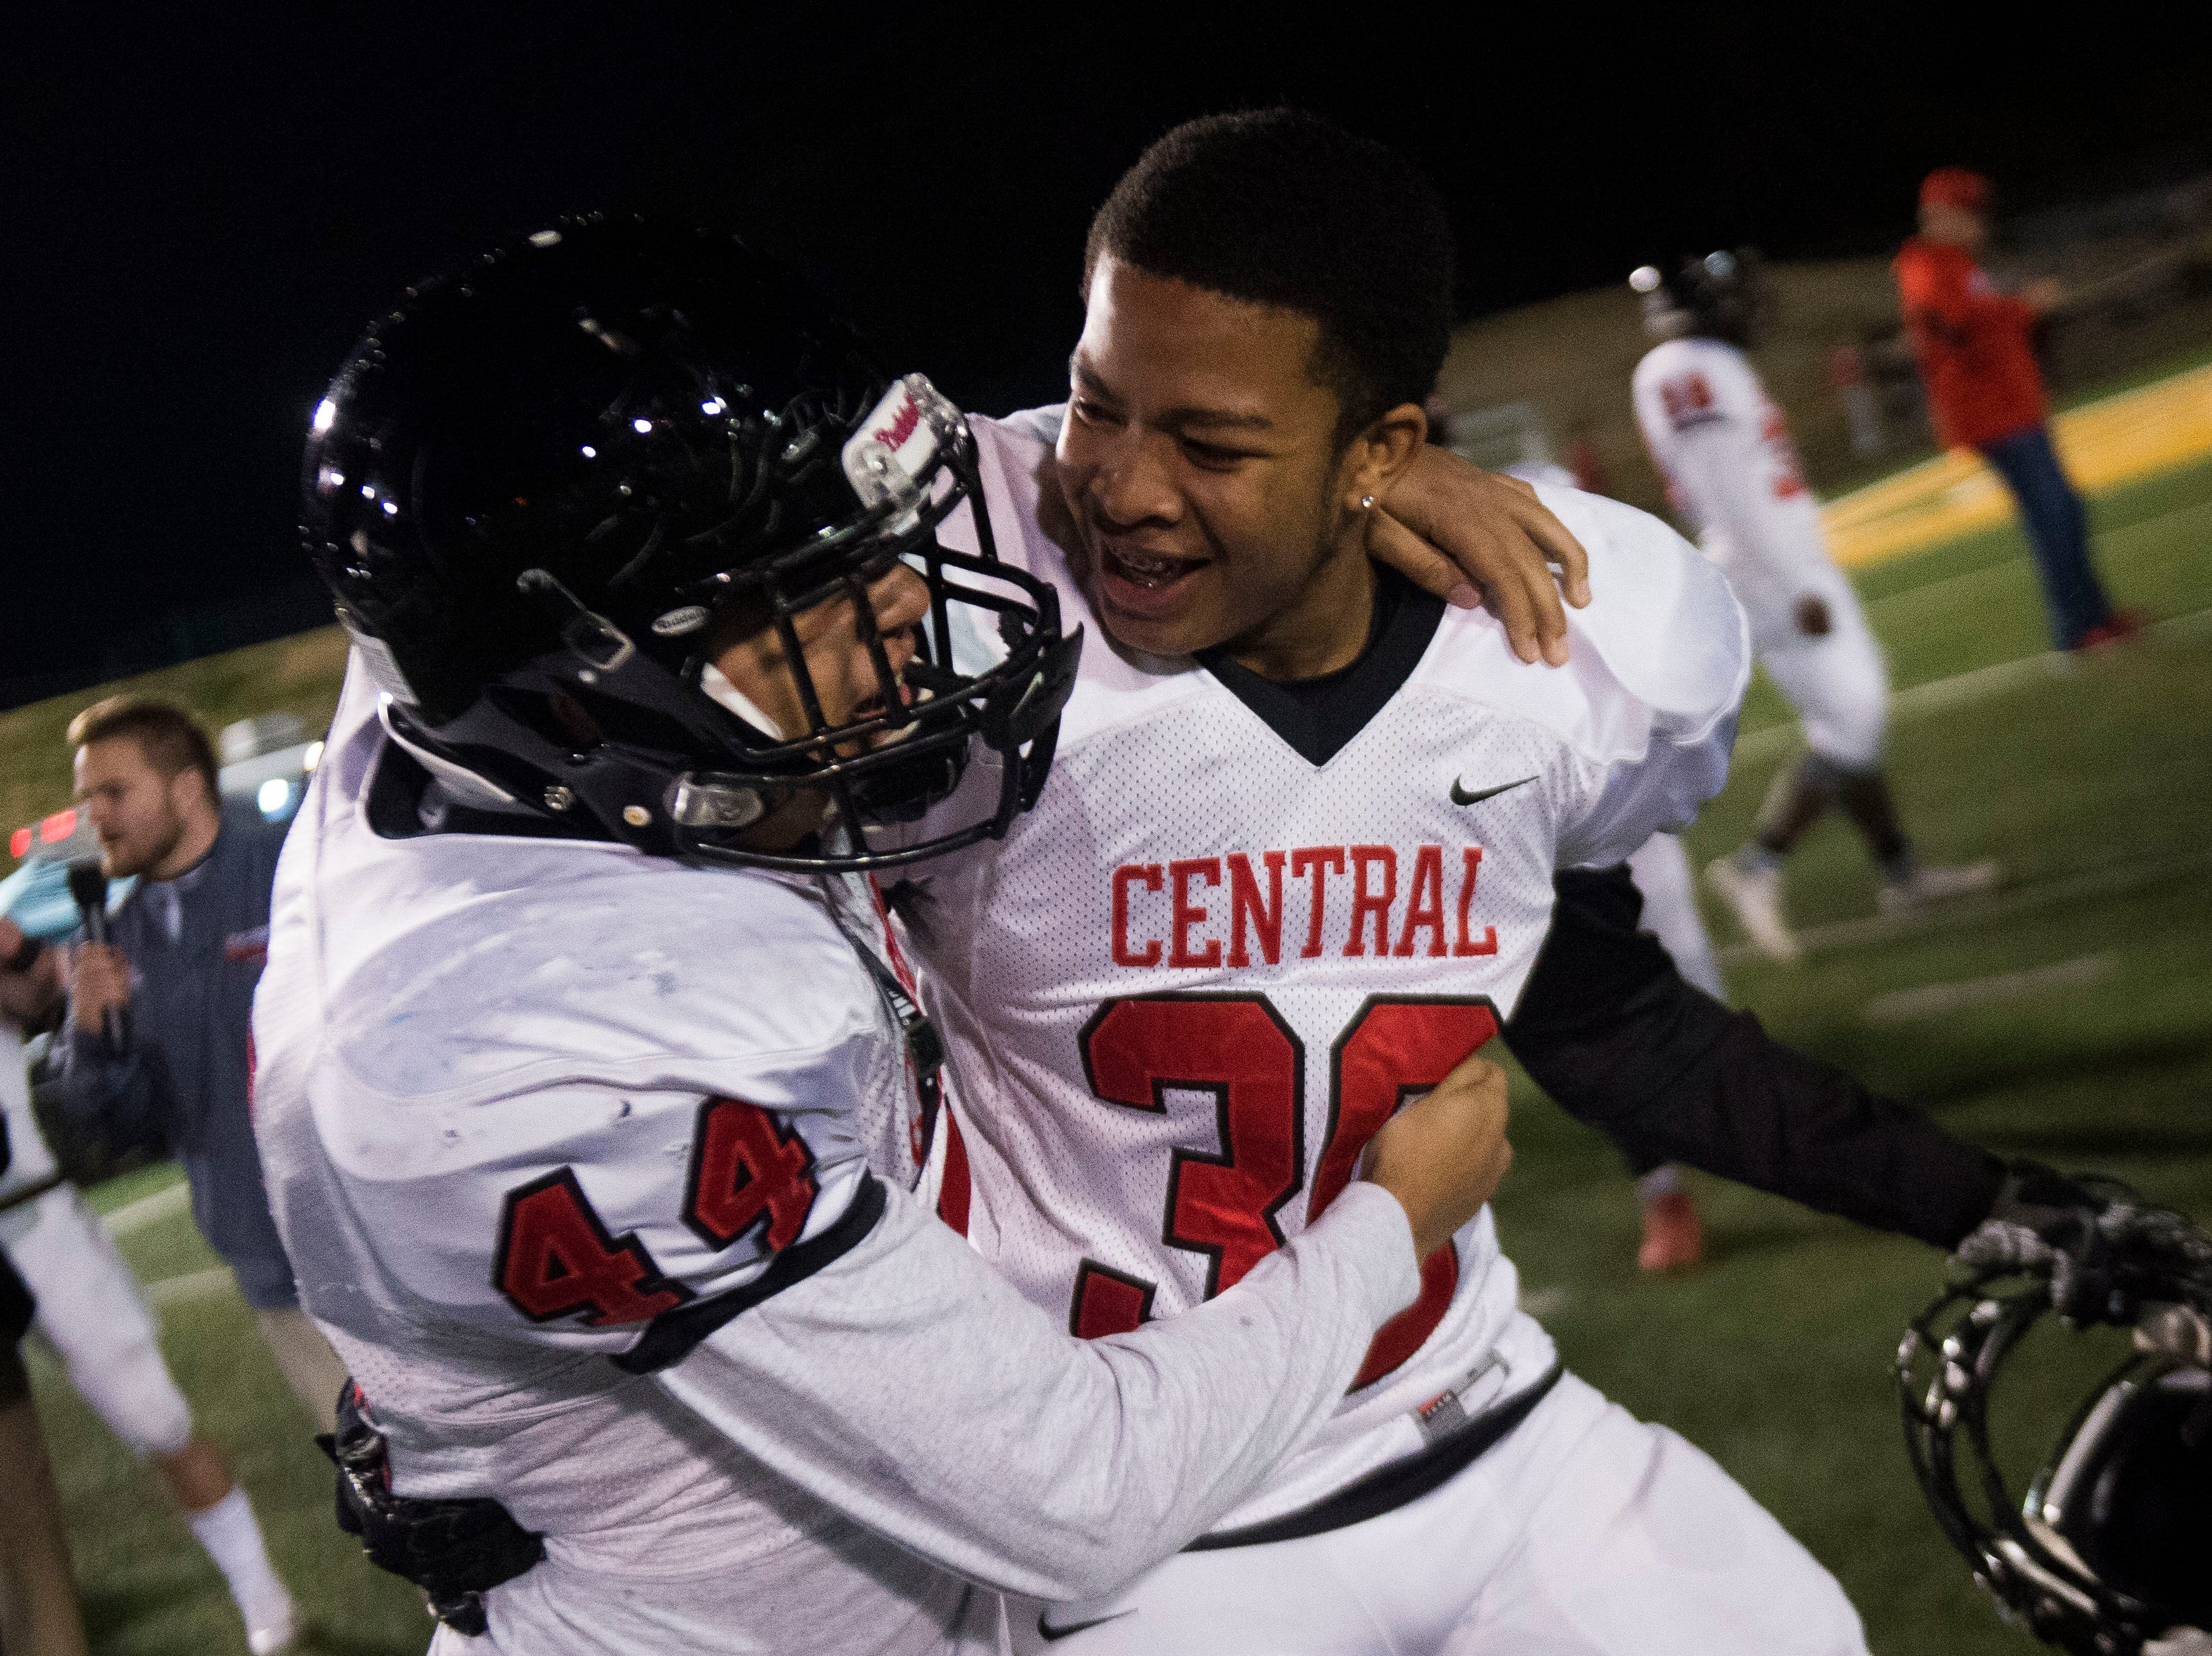 Central players celebrate after a Class 5A semifinal game between Central at Catholic Friday, Nov. 23, 2018. Central defeated Catholic 24-19.